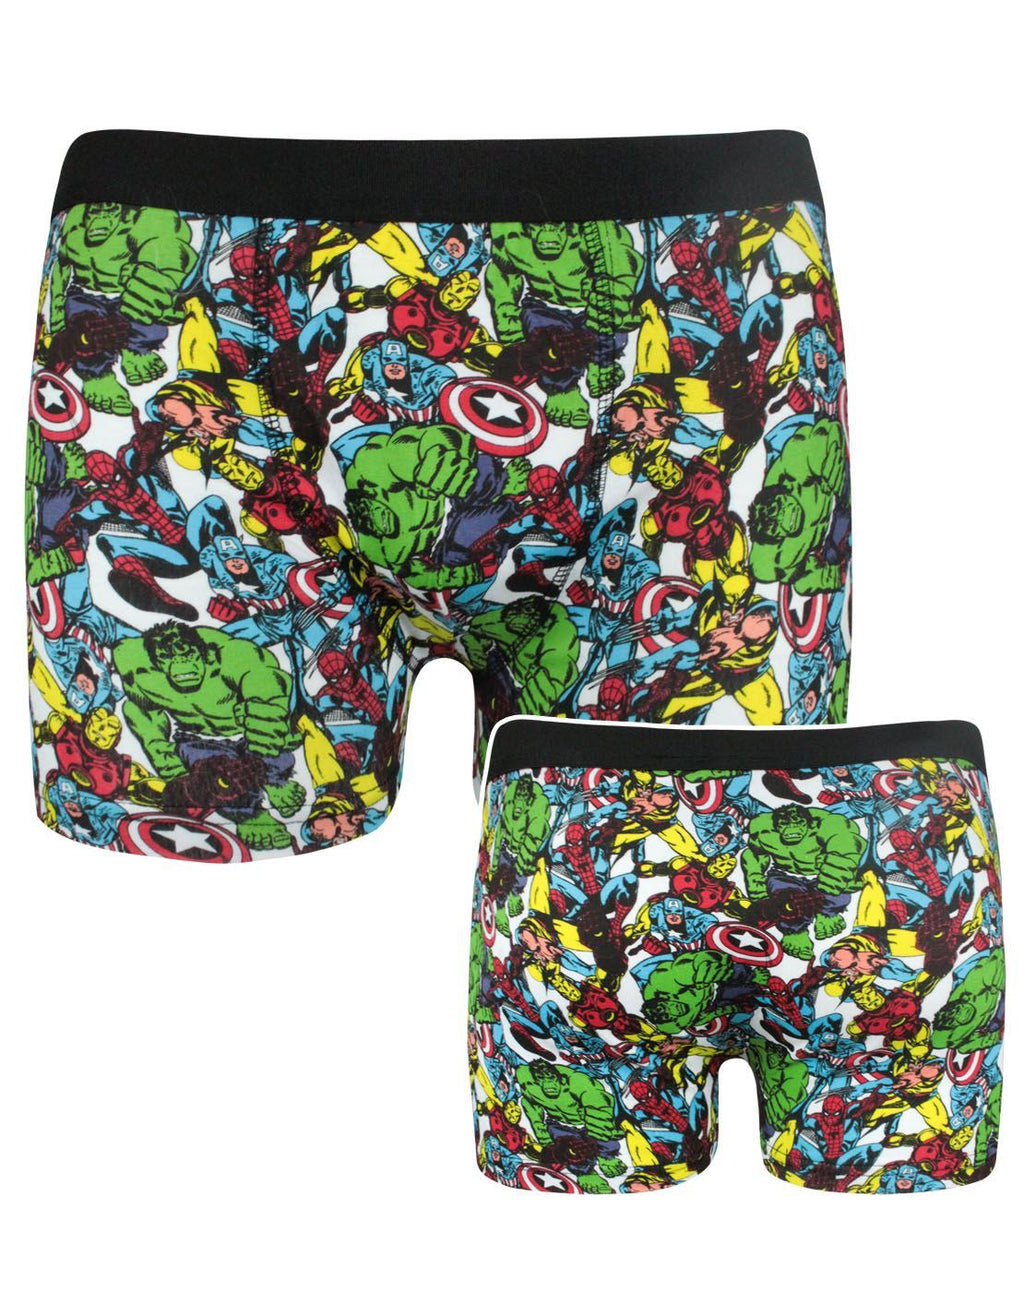 Marvel Heroes Men's Boxer Shorts